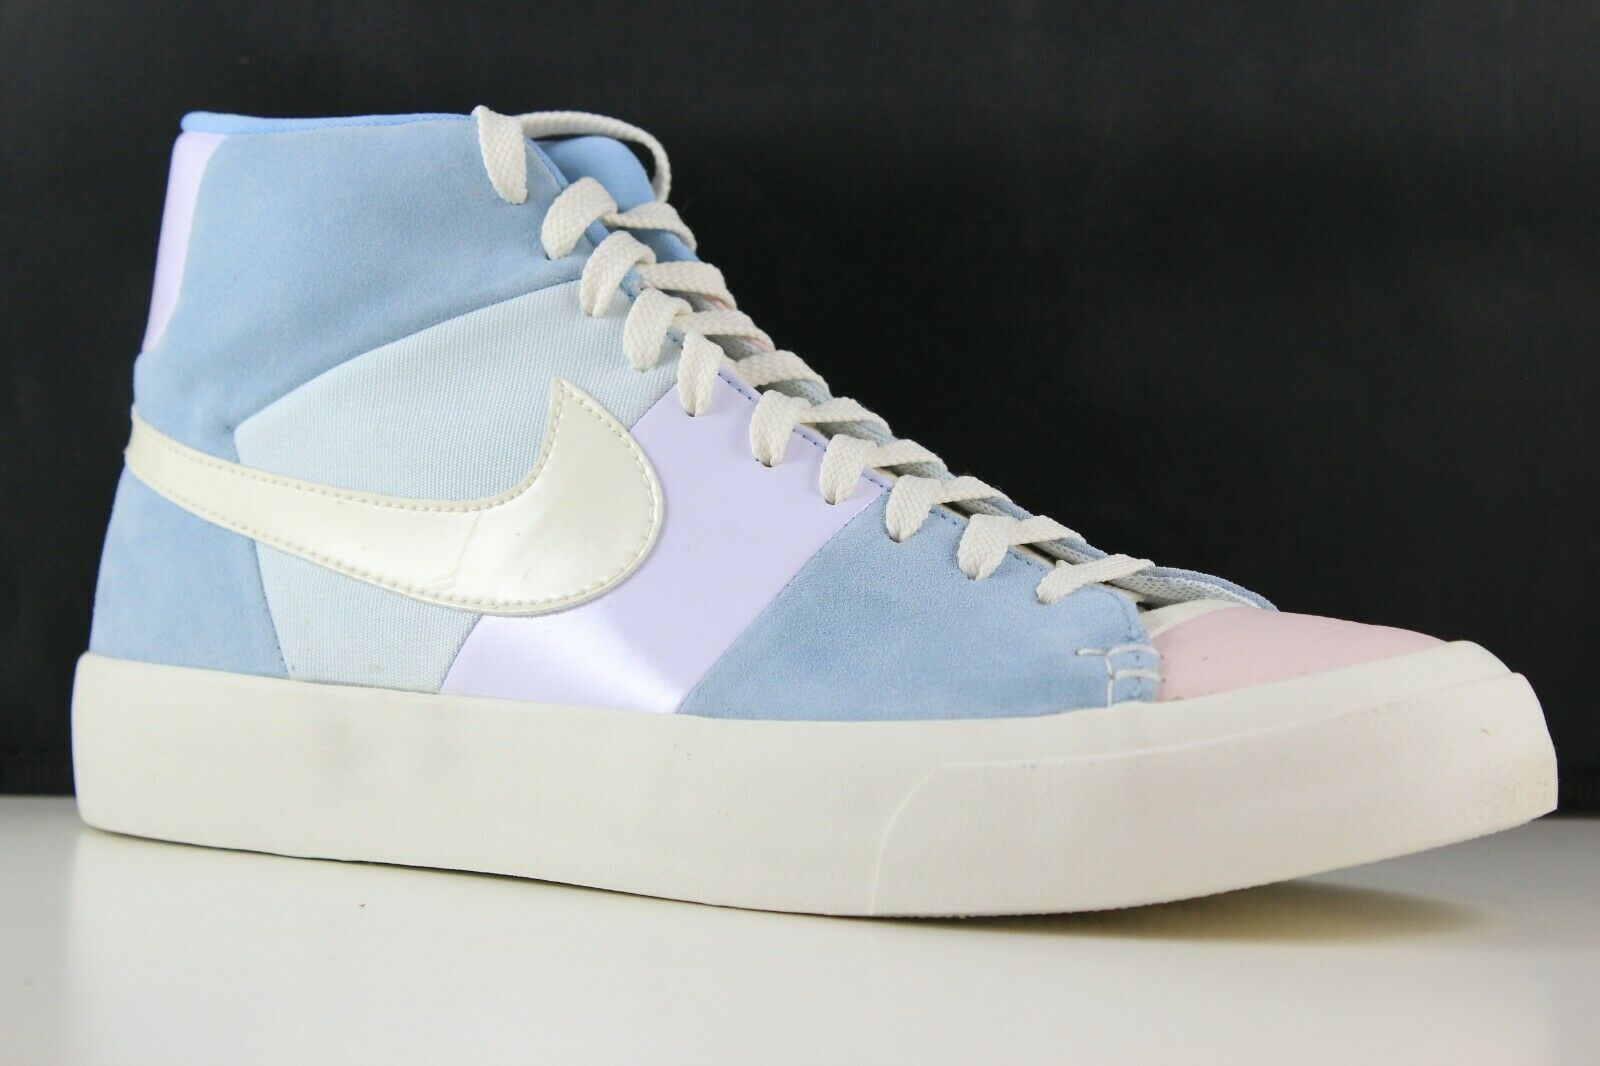 Nike Blazer Royal Easter Size 13 Mens Arctic Pink Sail-Leche bluee AO2368-600